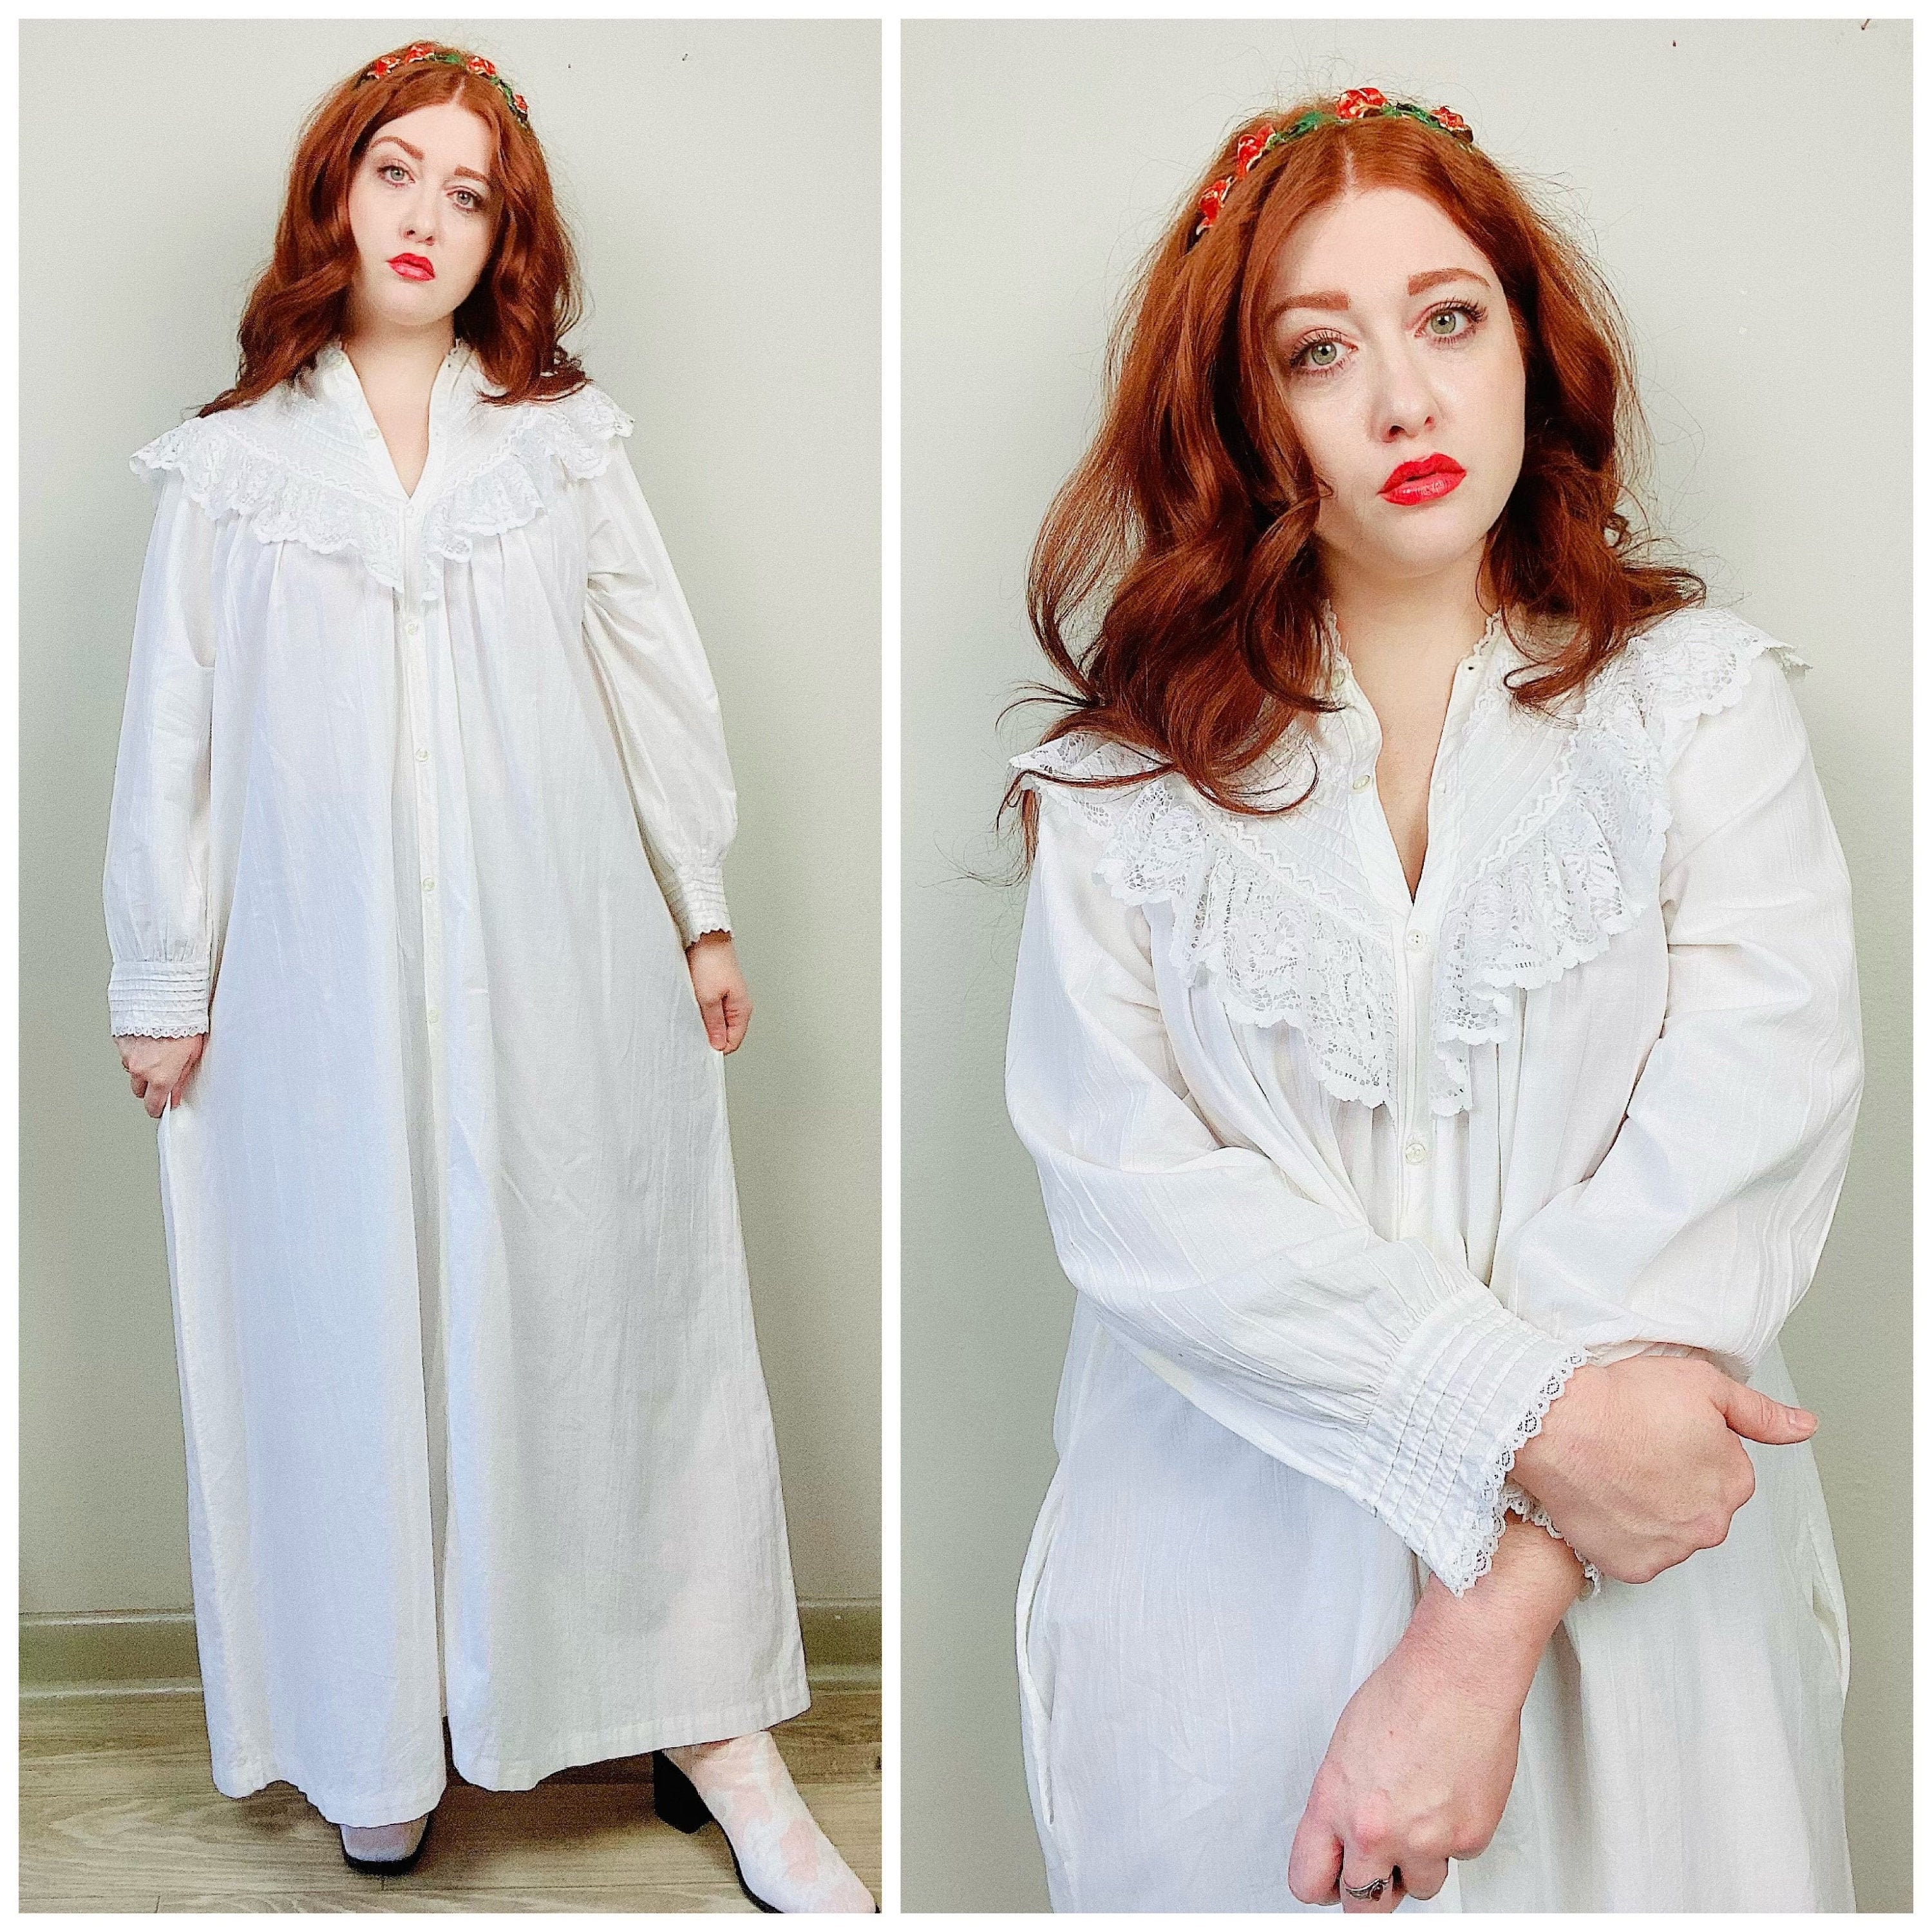 80s Dresses | Casual to Party Dresses 1980S Vintage White Cotton Diane Von Furstenberg Ruffled Gown80S Eighties Lace Trim Long Sleeve Button Front Dress Size Large $26.50 AT vintagedancer.com